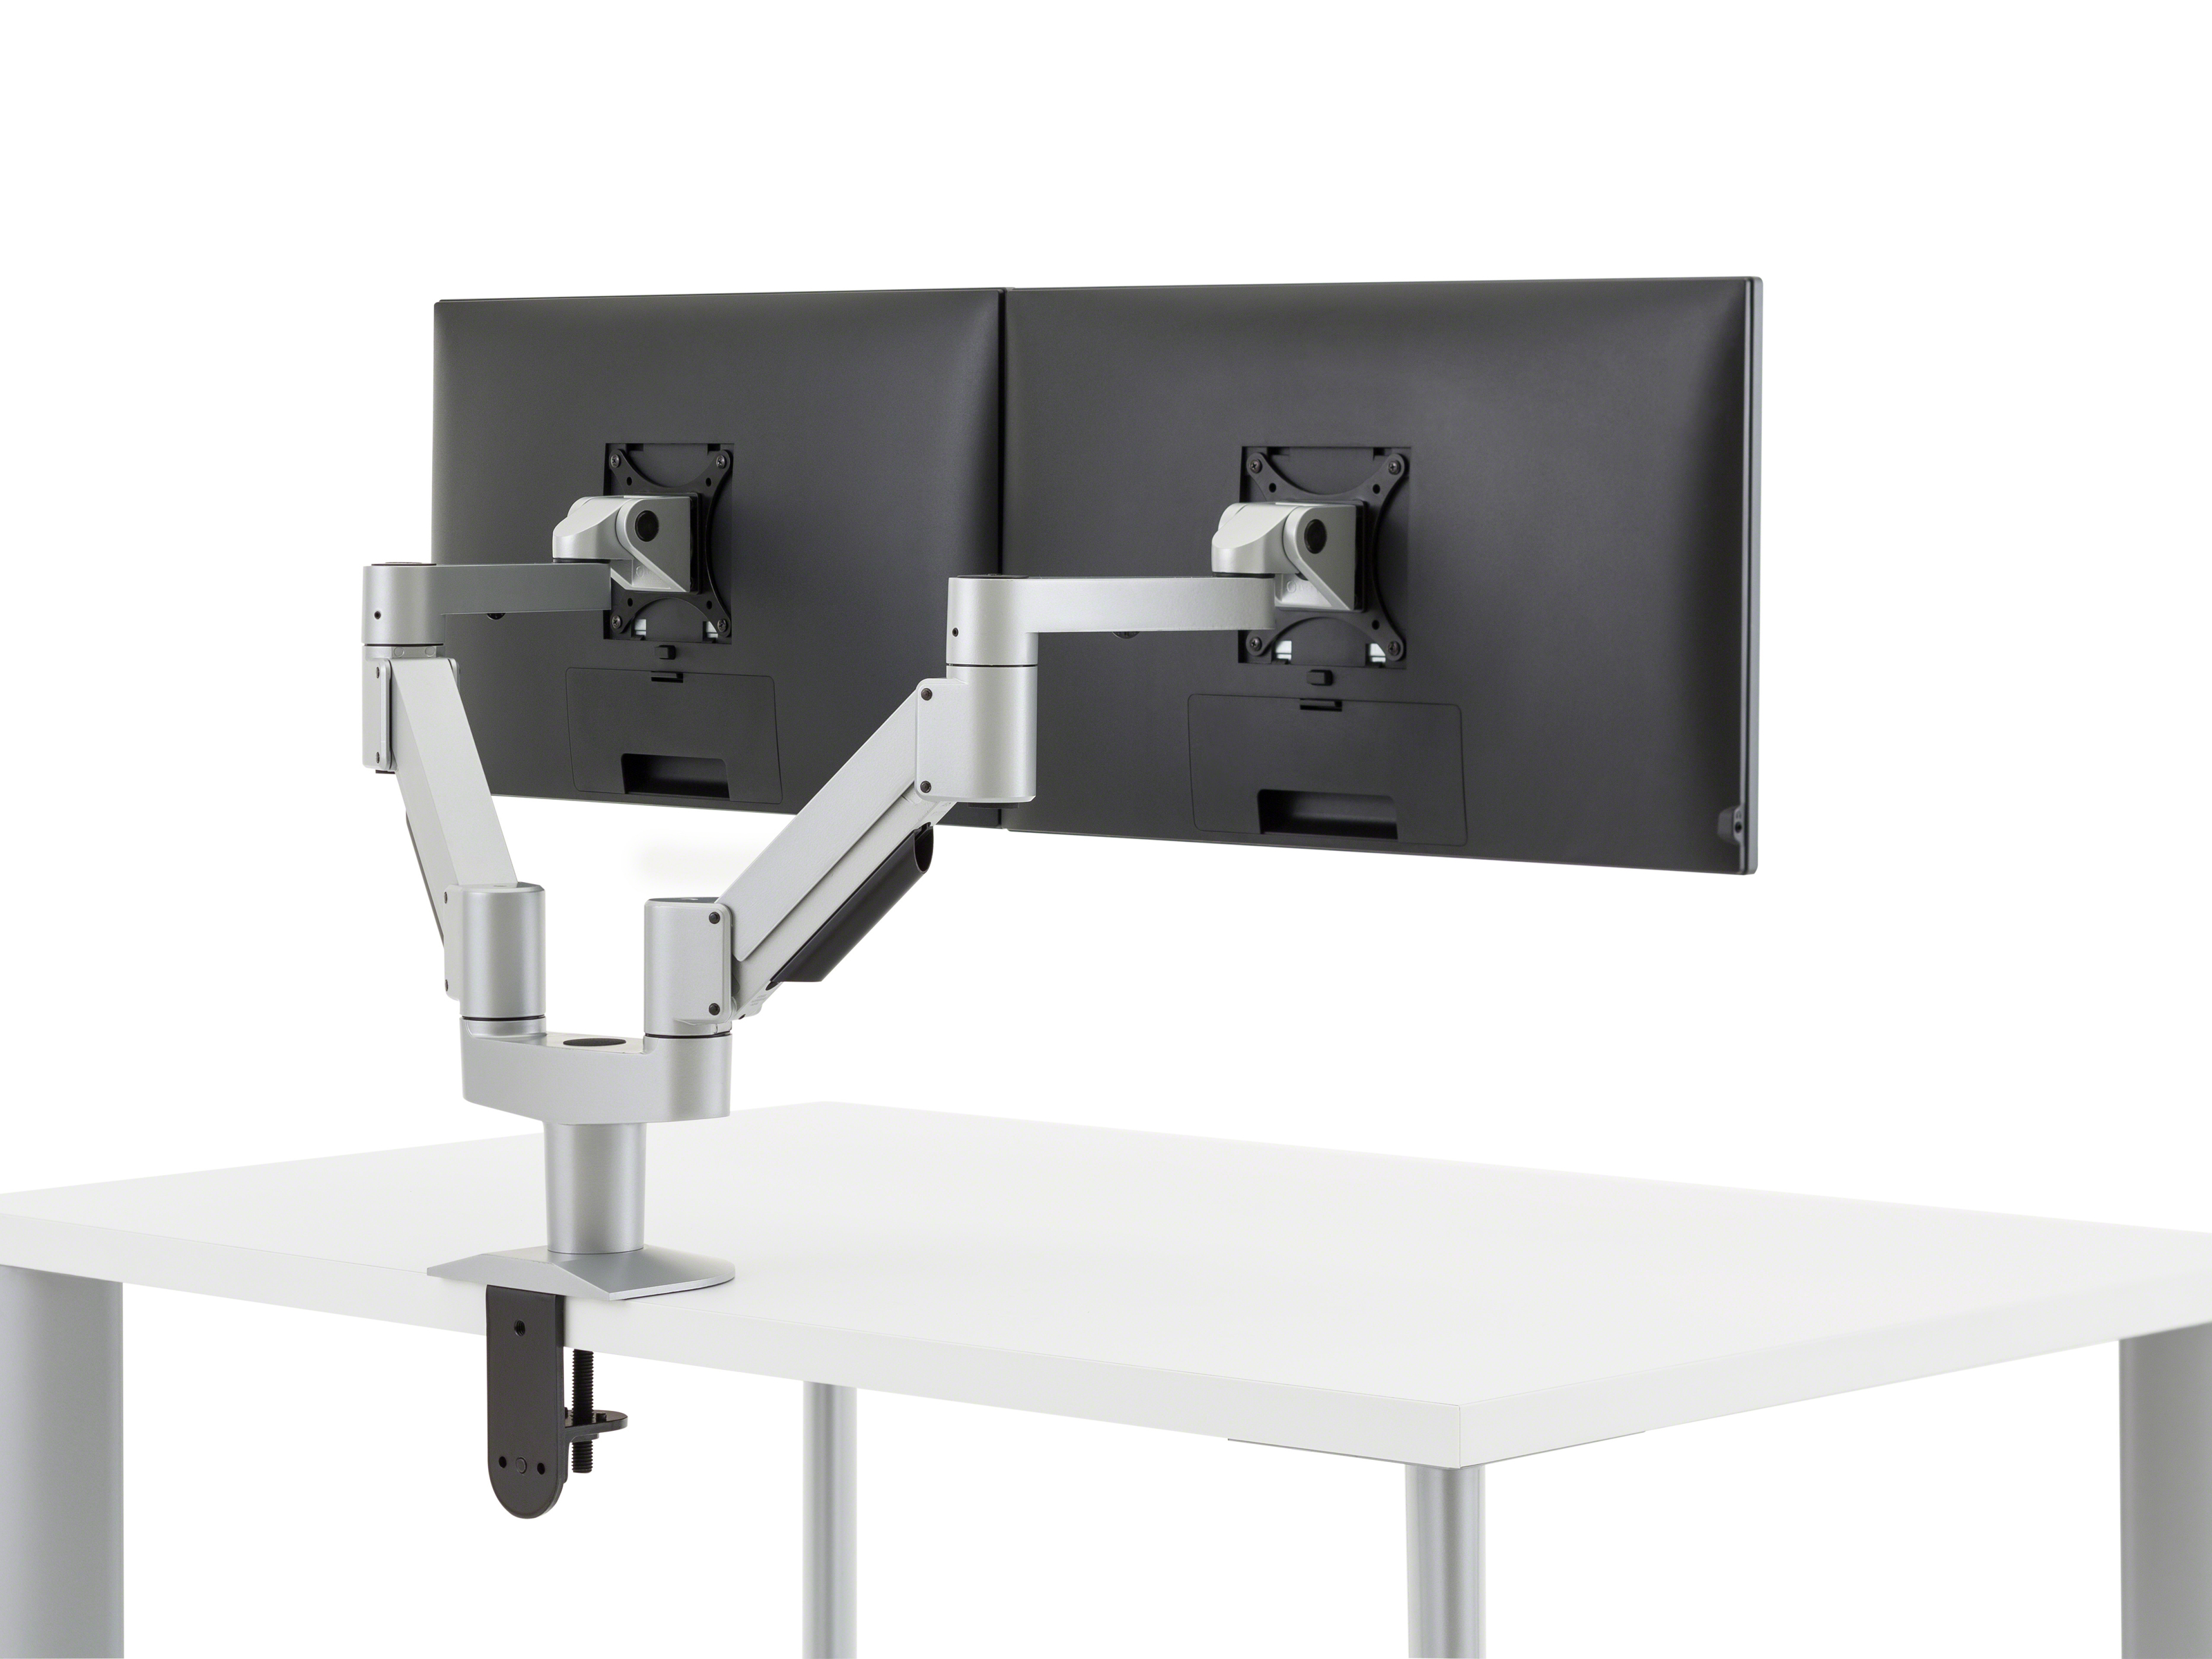 Single Articulating Monitor Arm